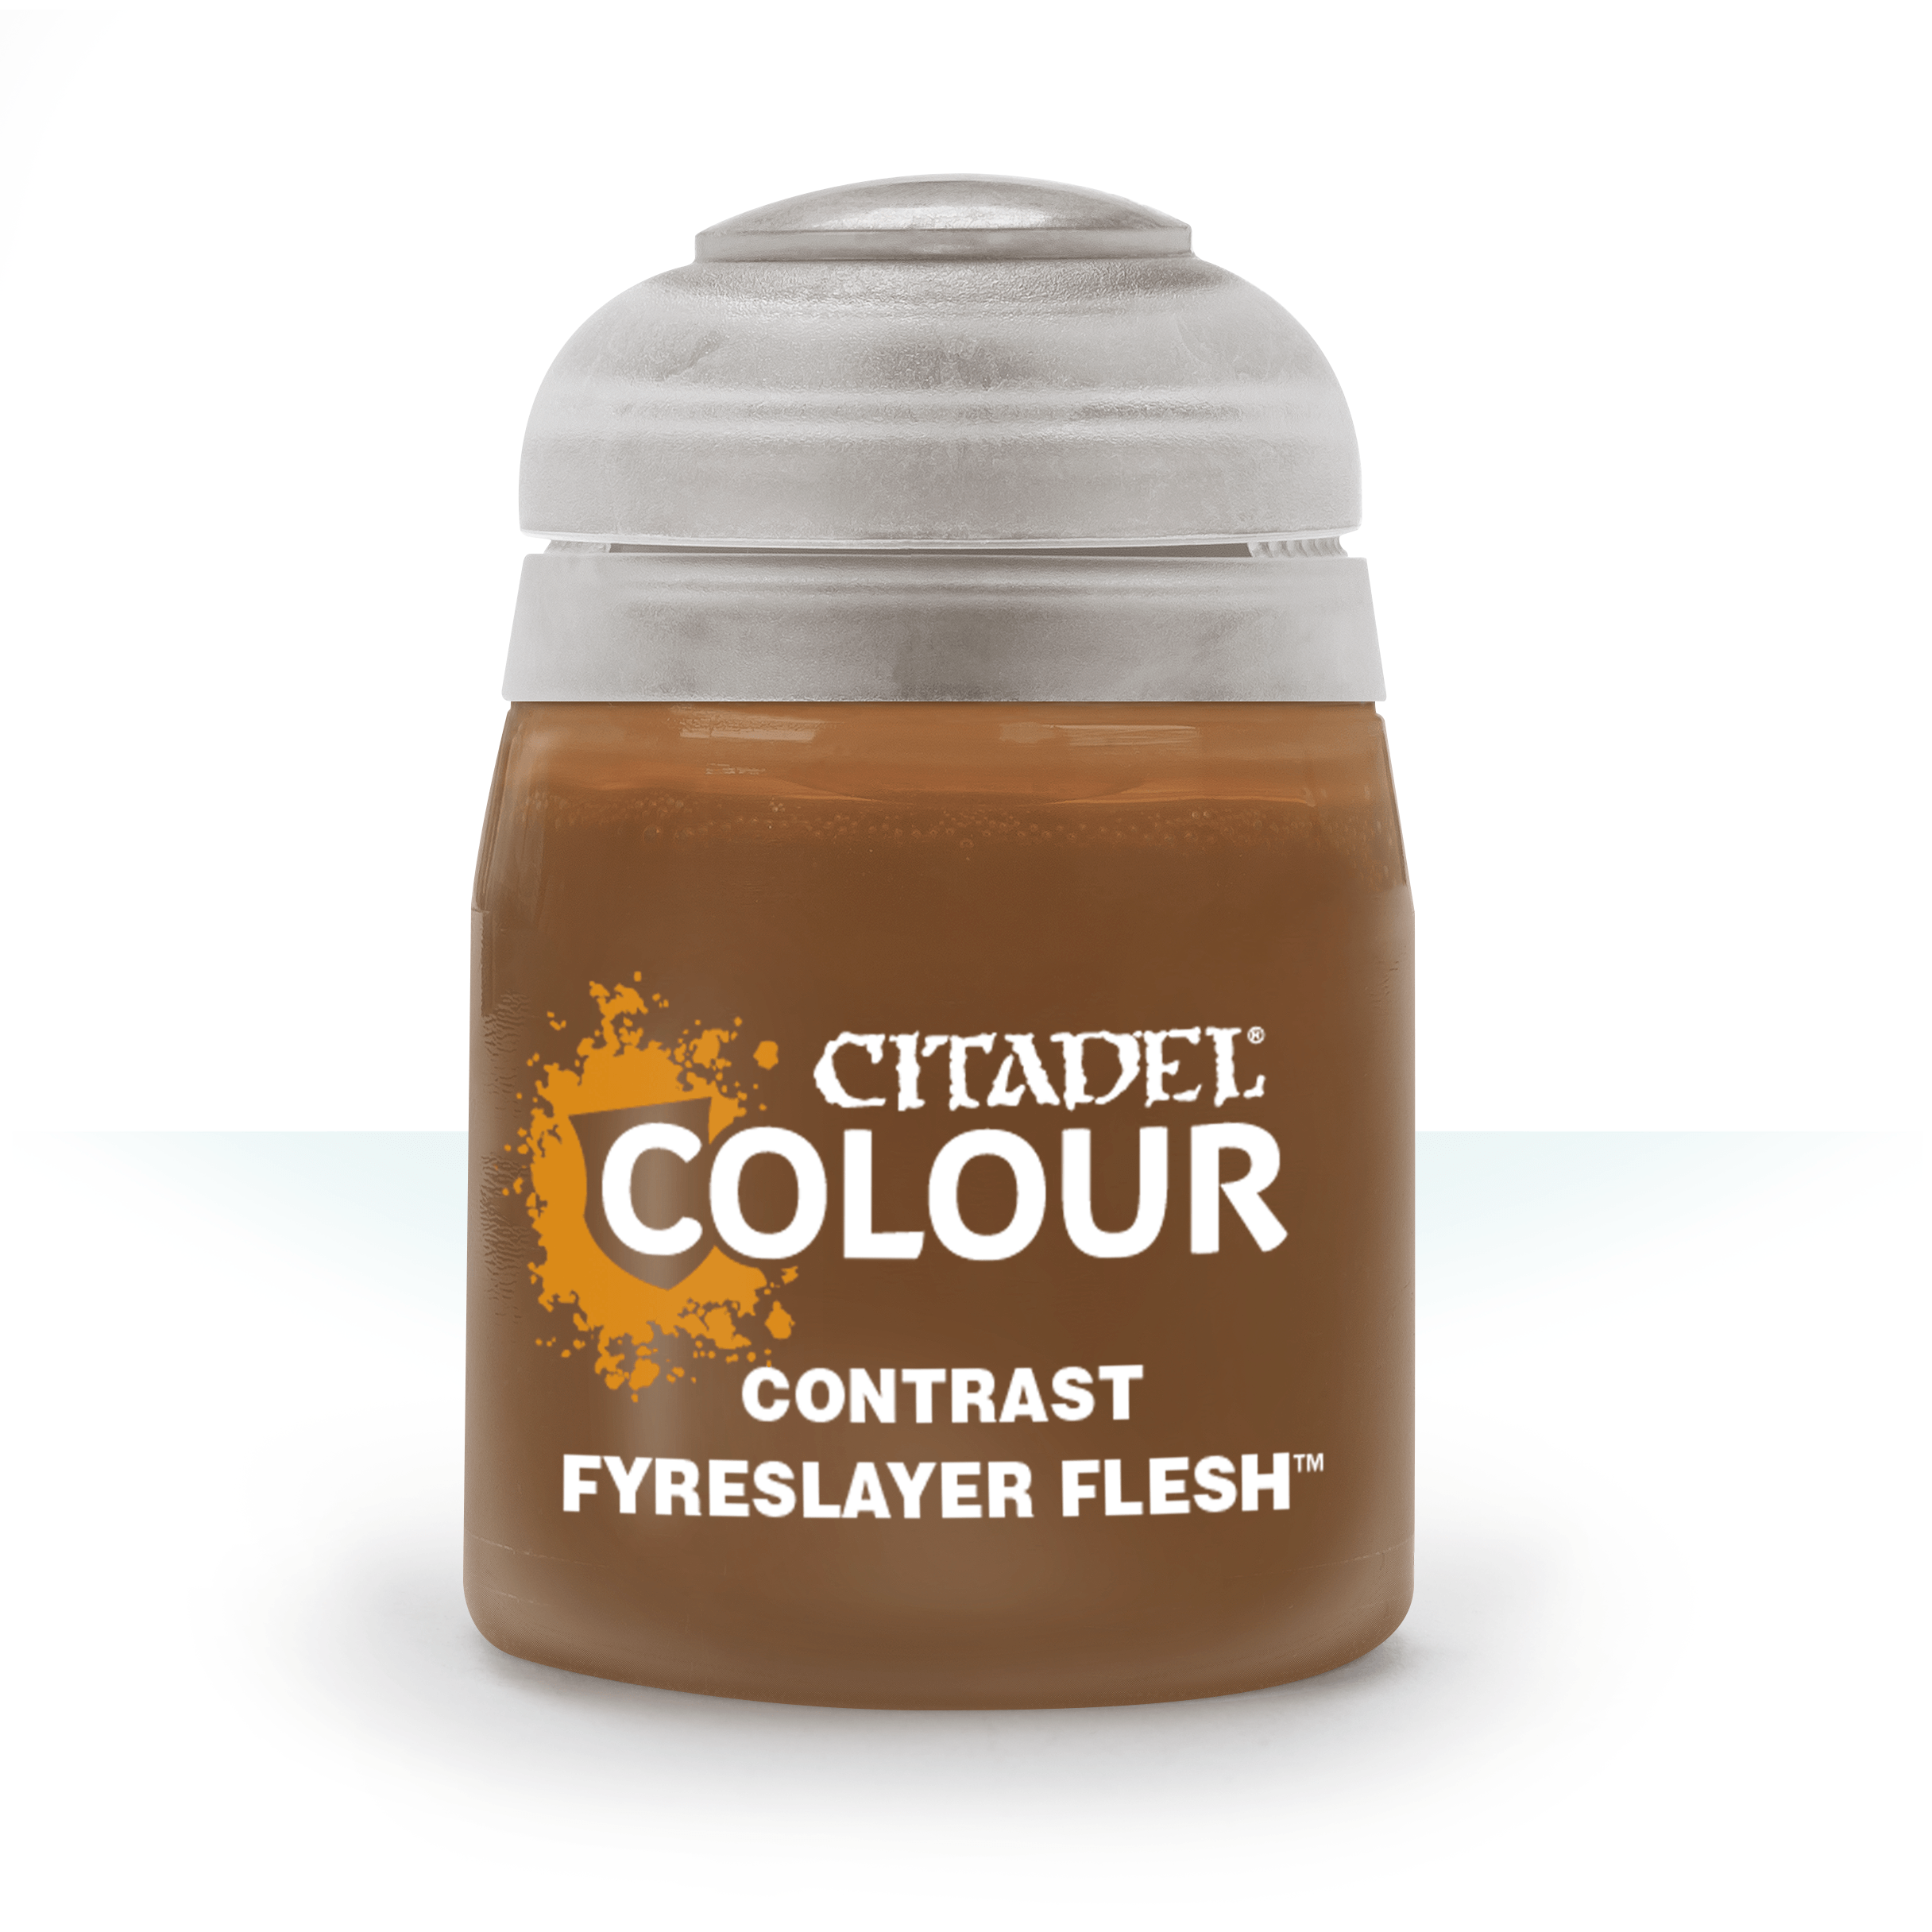 Citadel Contrast Paints: Fyreslayer Flesh